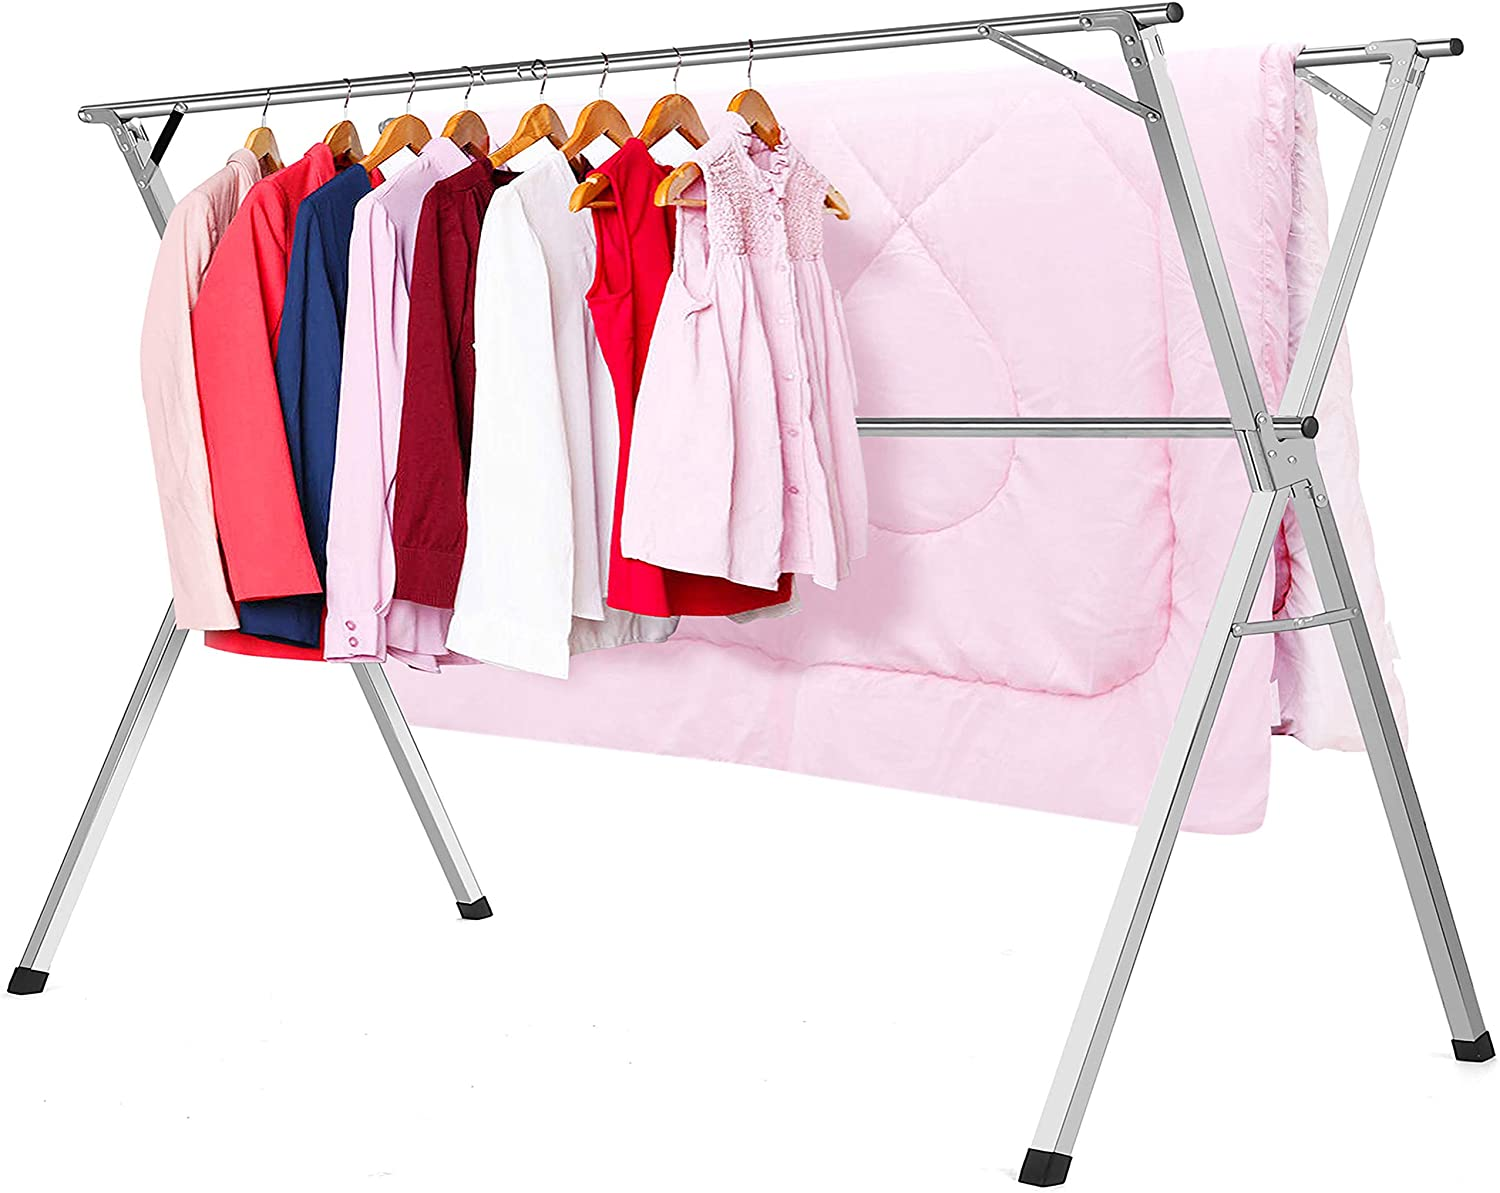 HYNAWIN Clothes Drying Racks Stainless Steel Laundry Rack